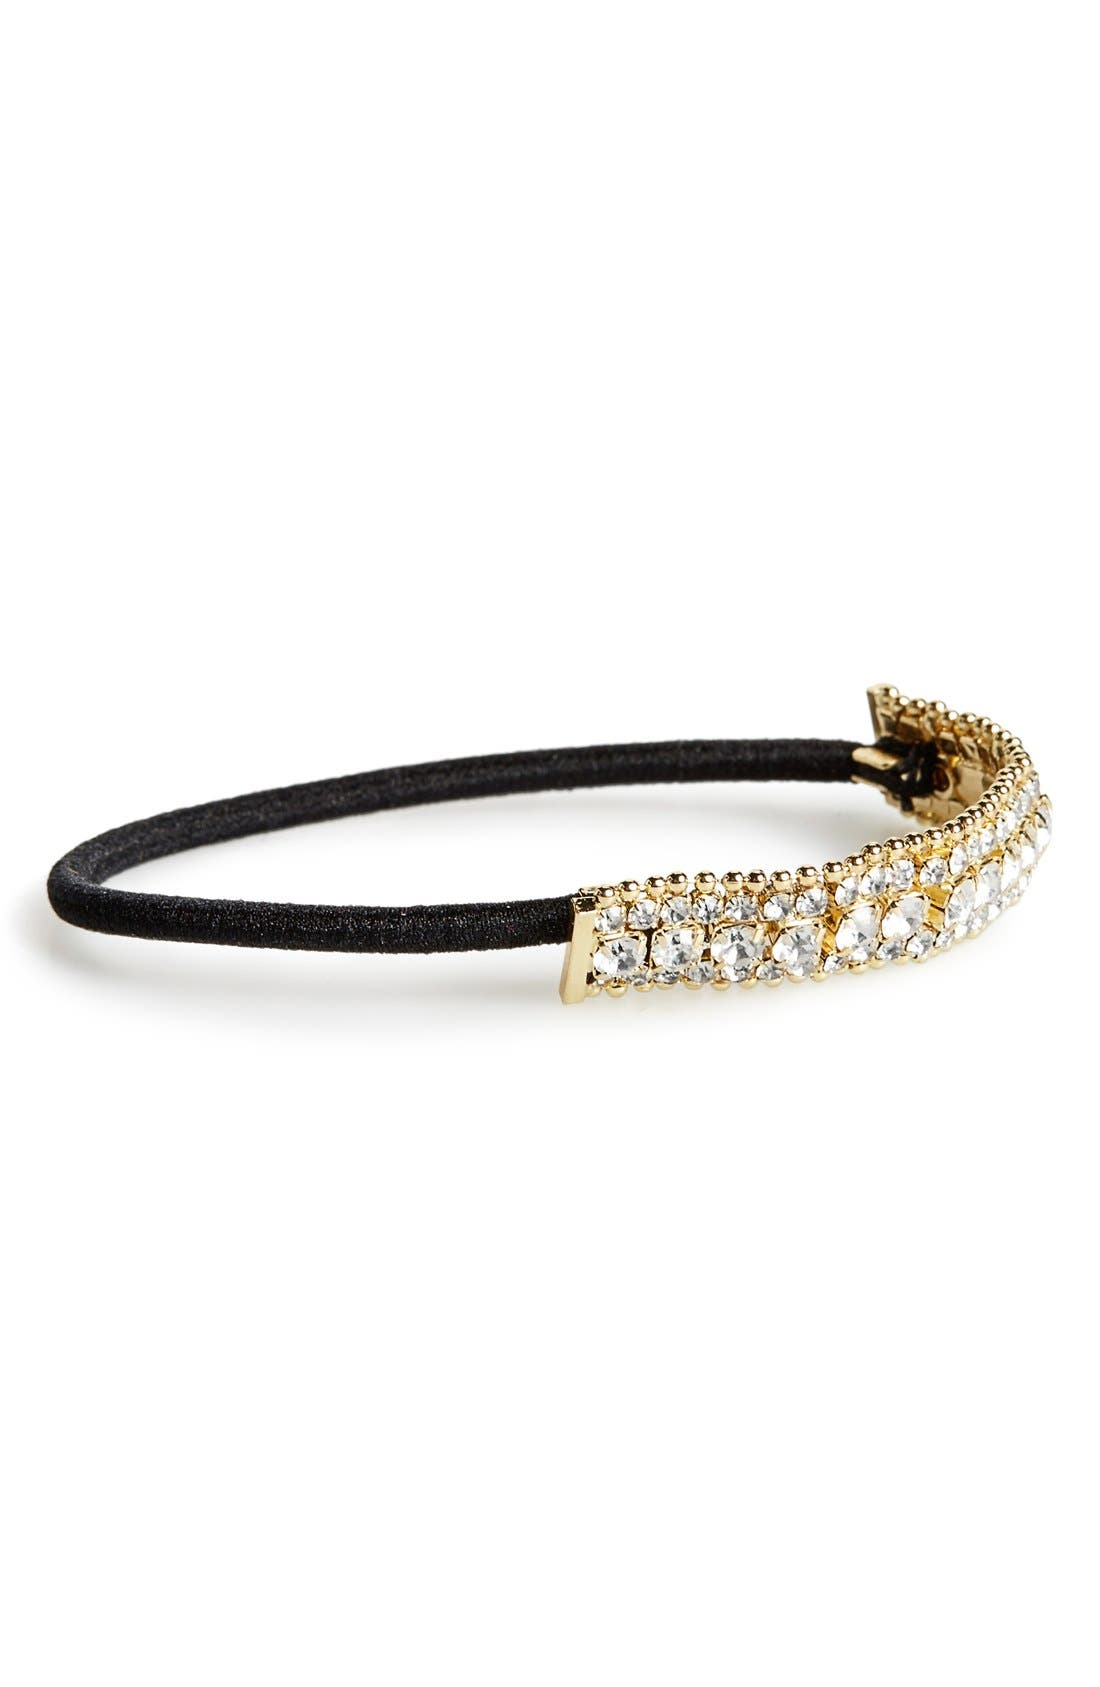 Crystal & Ball Chain Ponytail Holder,                         Main,                         color, Gold